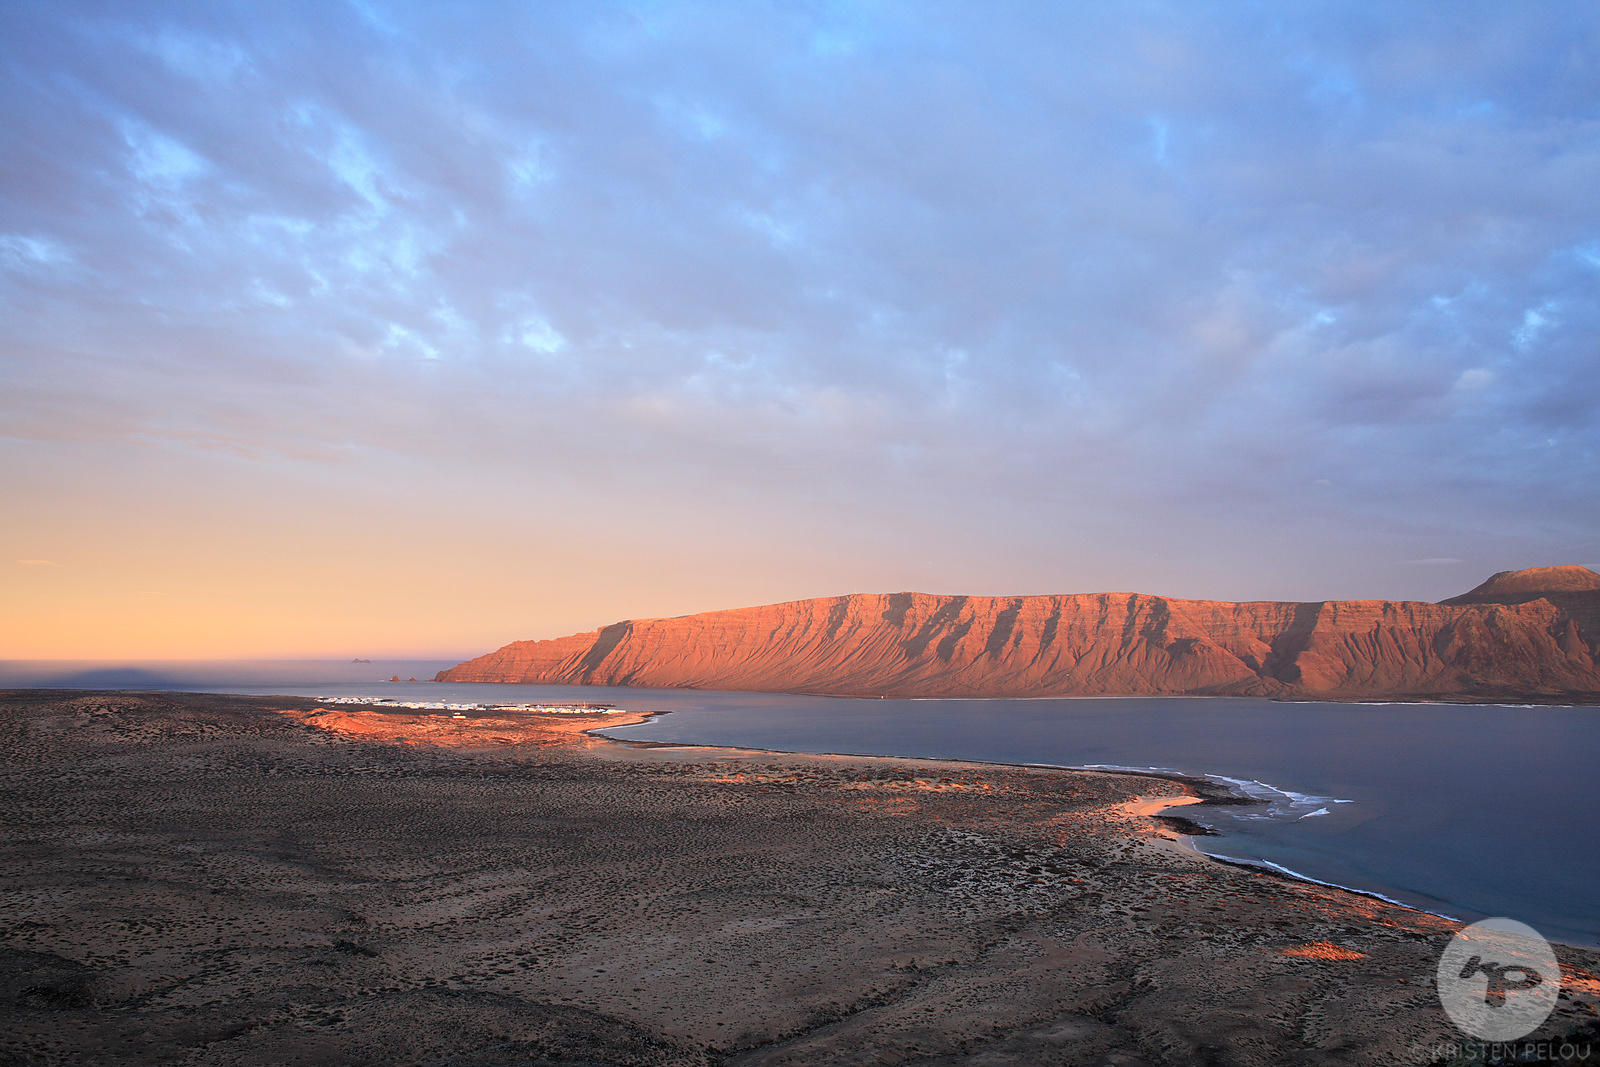 Travel photographer Paris - La Graciosa at sunset. Photo ©Kristen Pelou